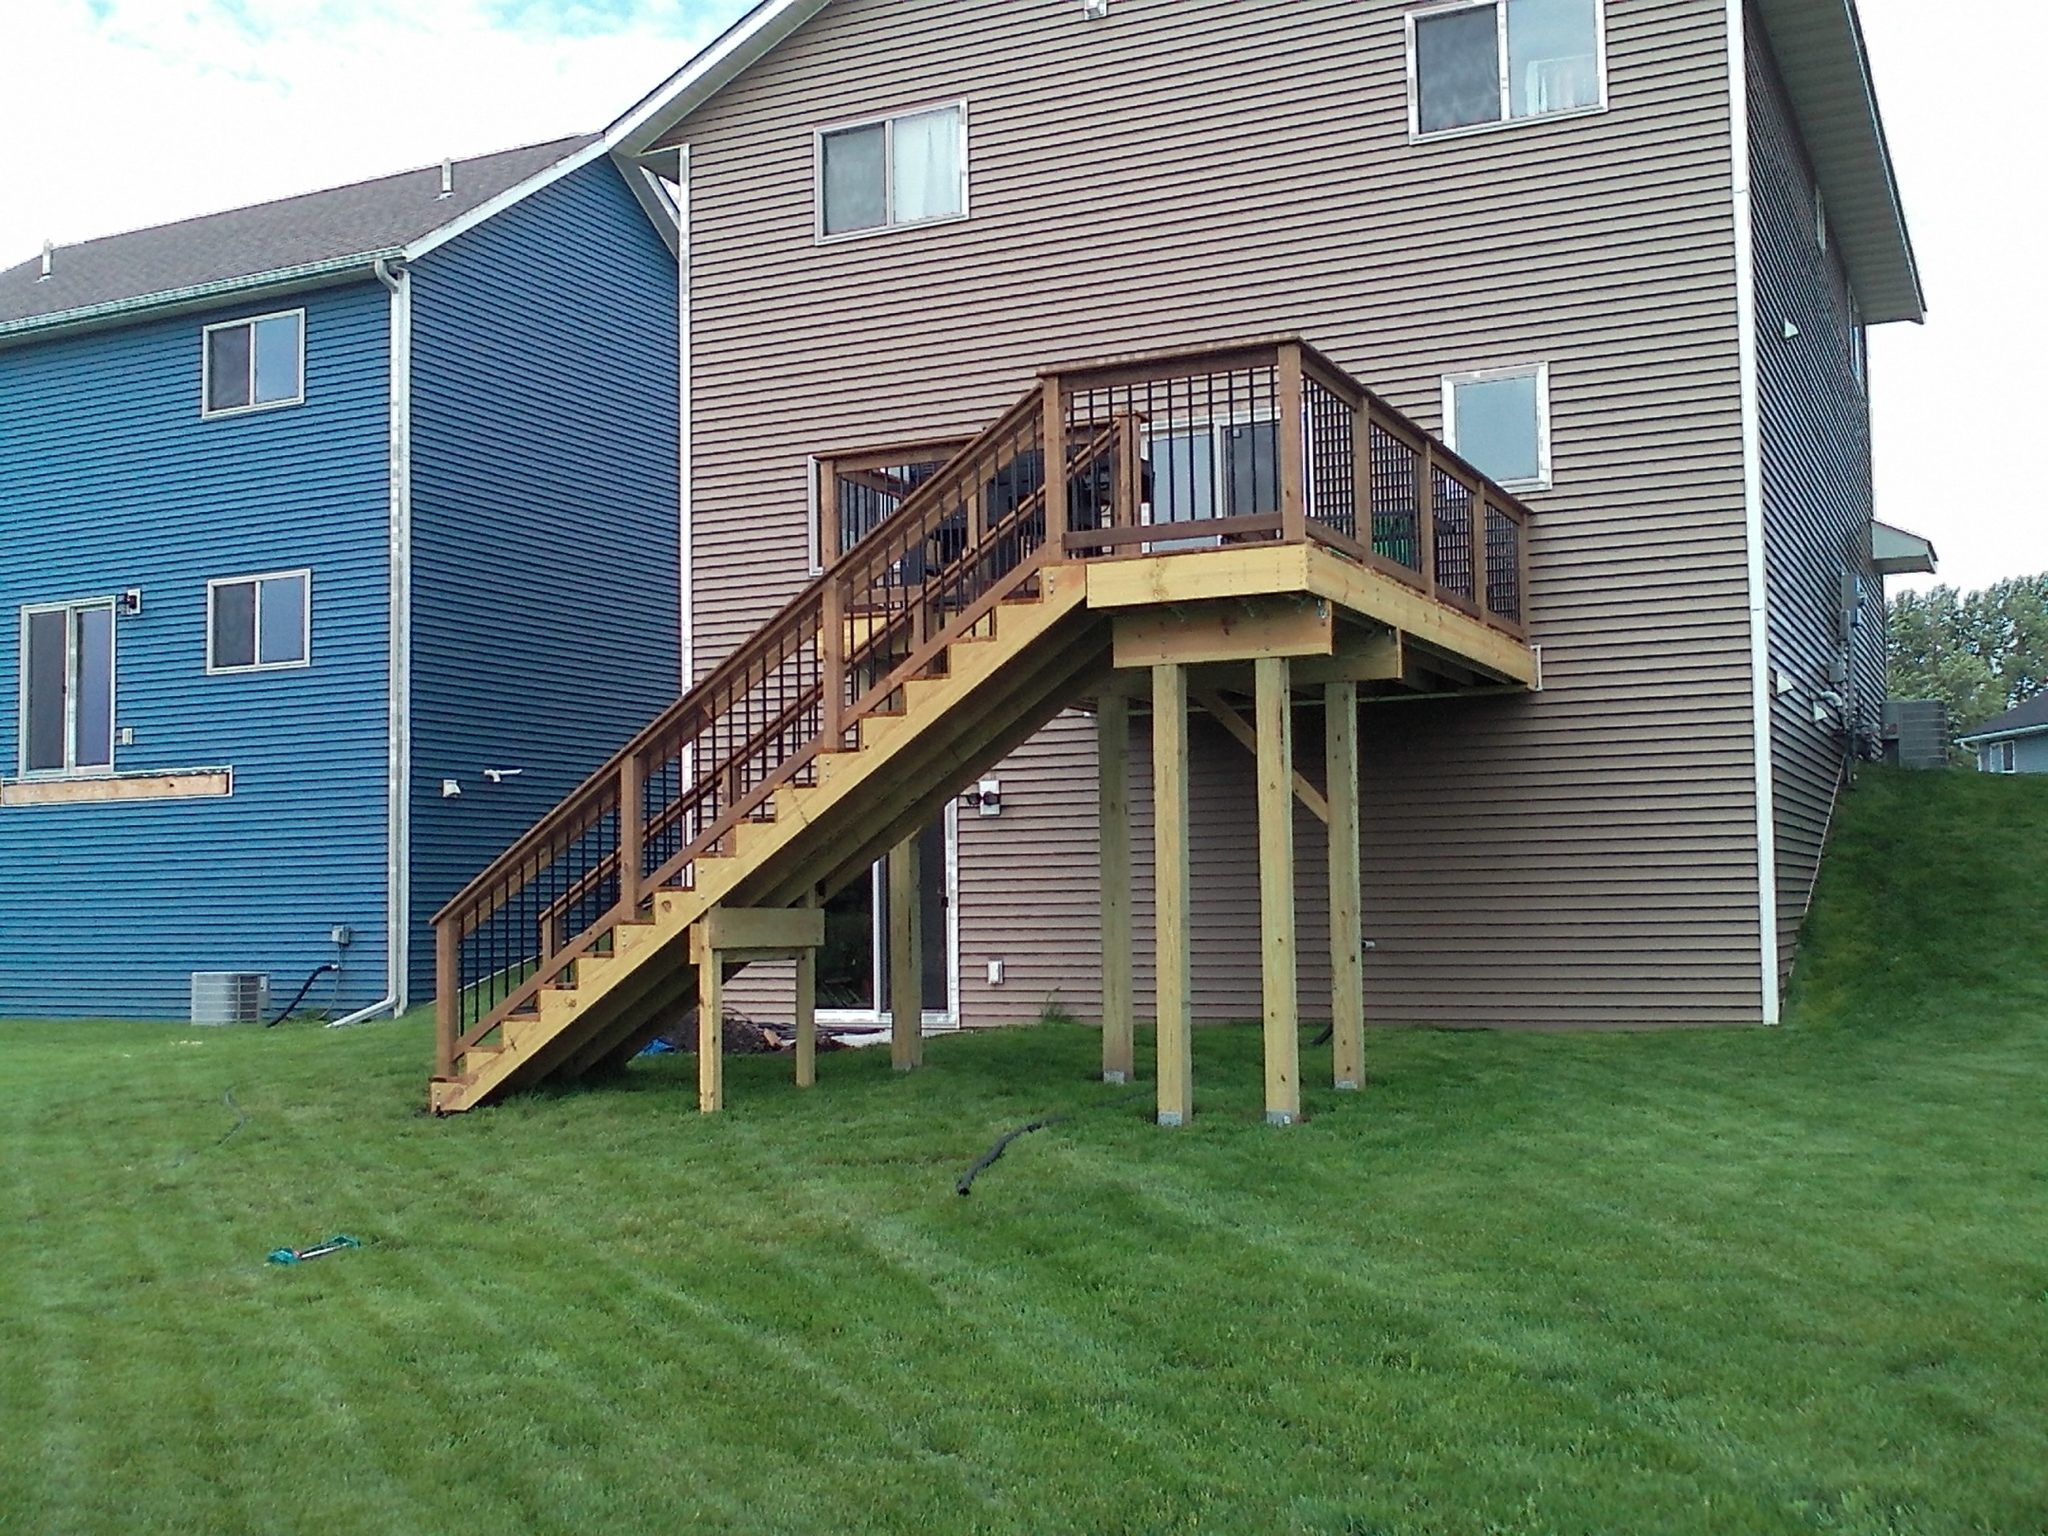 mankato-deck-and-railing-113507